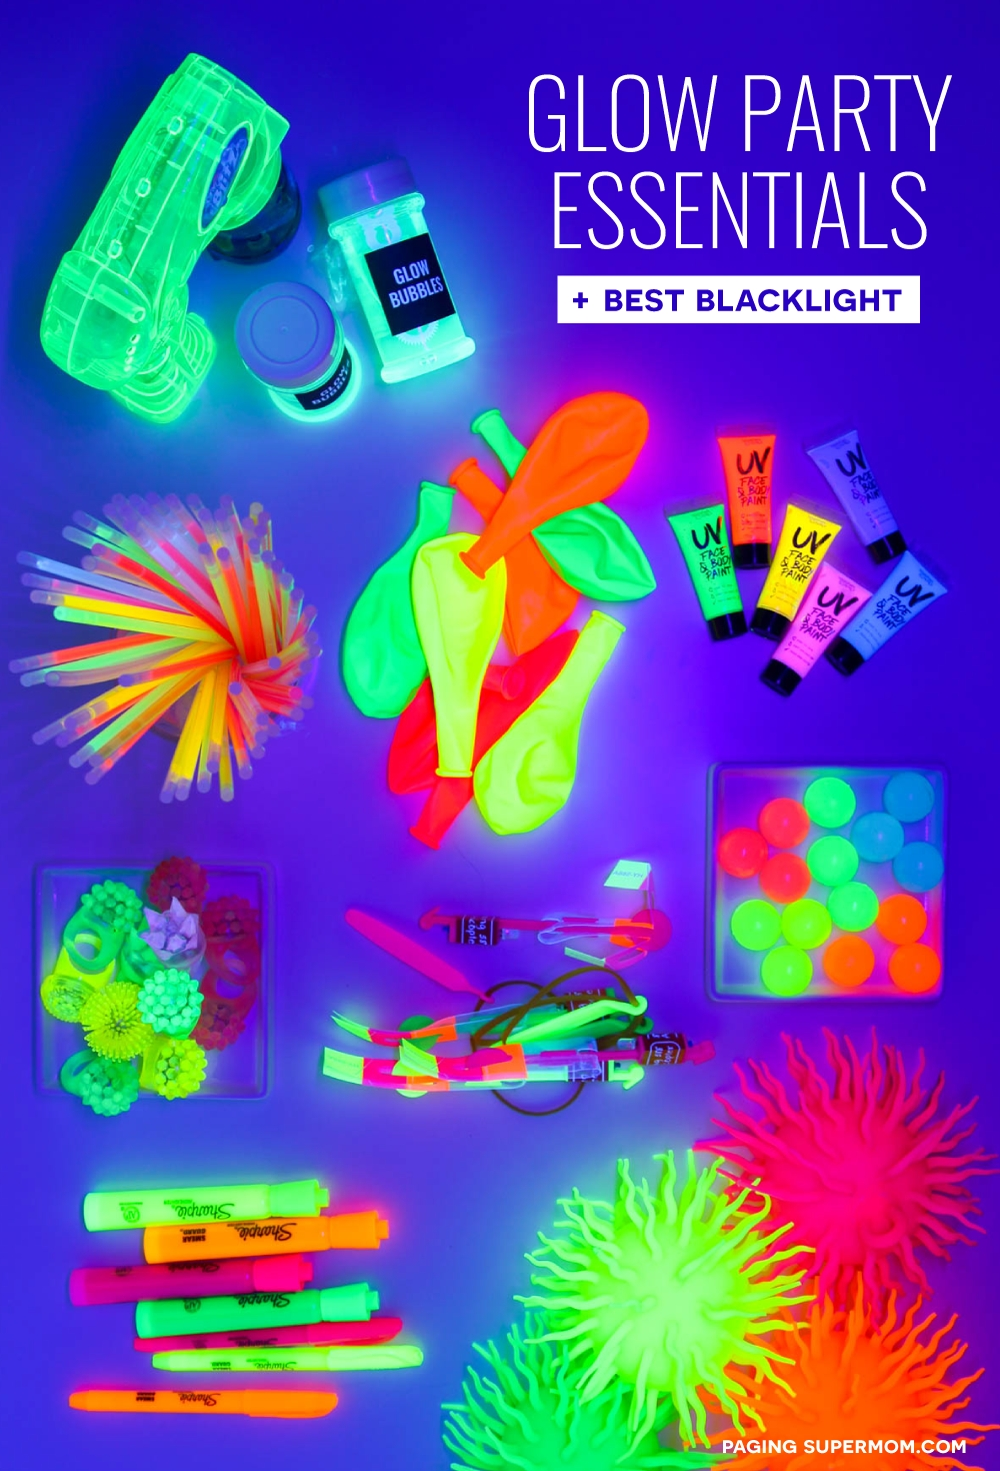 10 Elegant Glow In Dark Party Ideas glow party ideas ultimate guide how to throw a black light party 2020